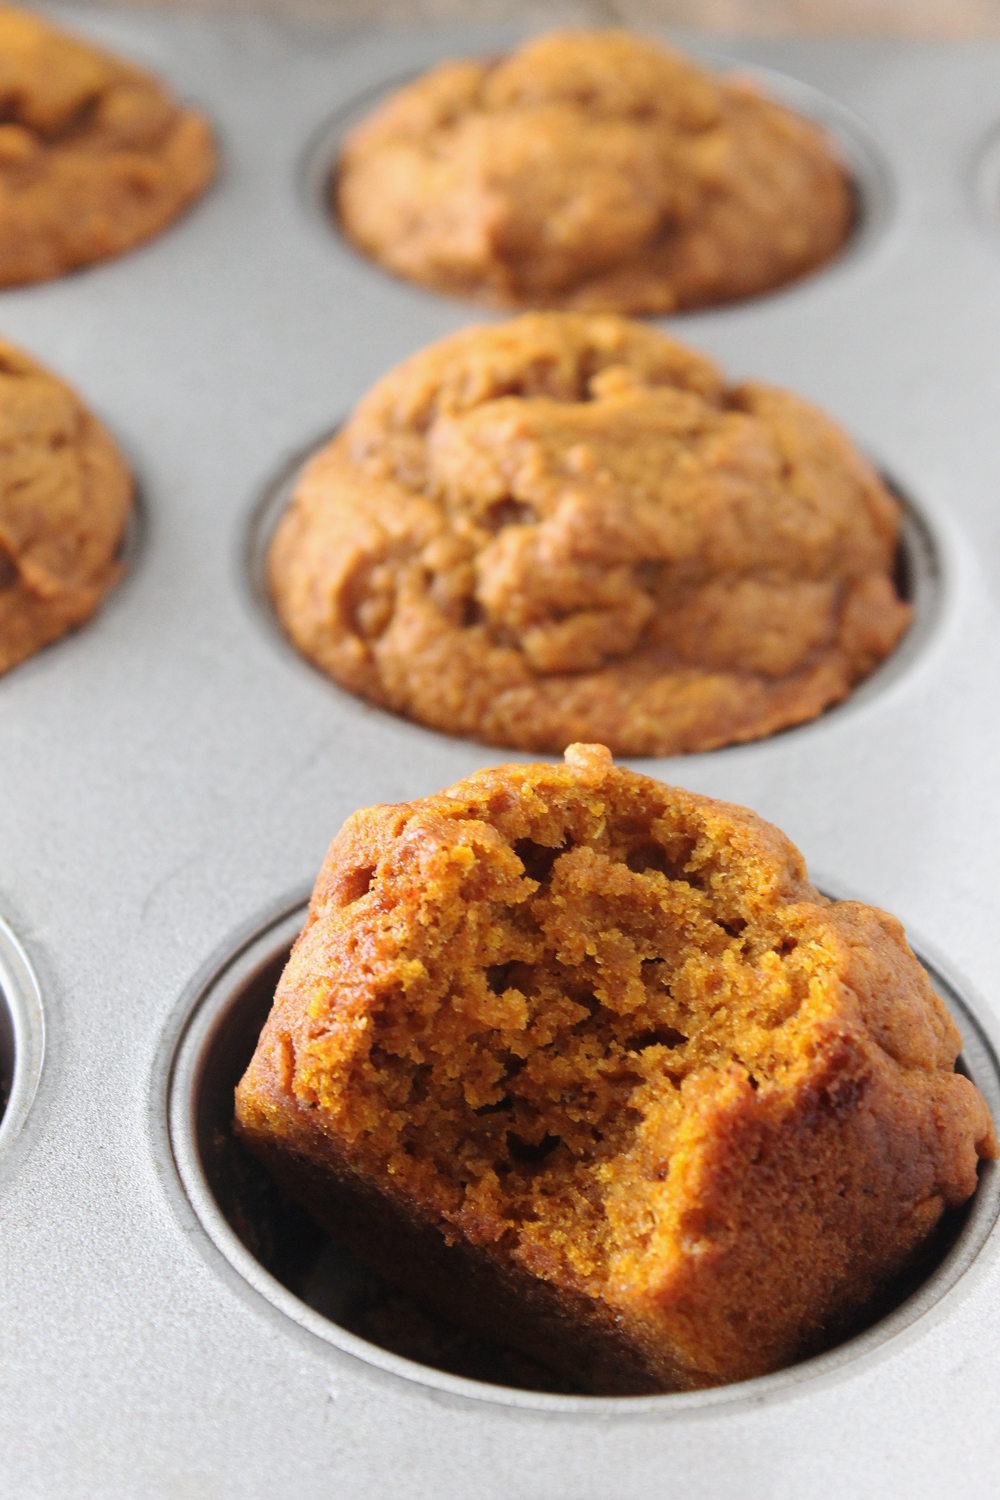 These ultra soft and flavorful pumpkin muffins are the perfect way to start your day. With just the right balance of flavors, these muffins are sure to be a crowd-pleaser!